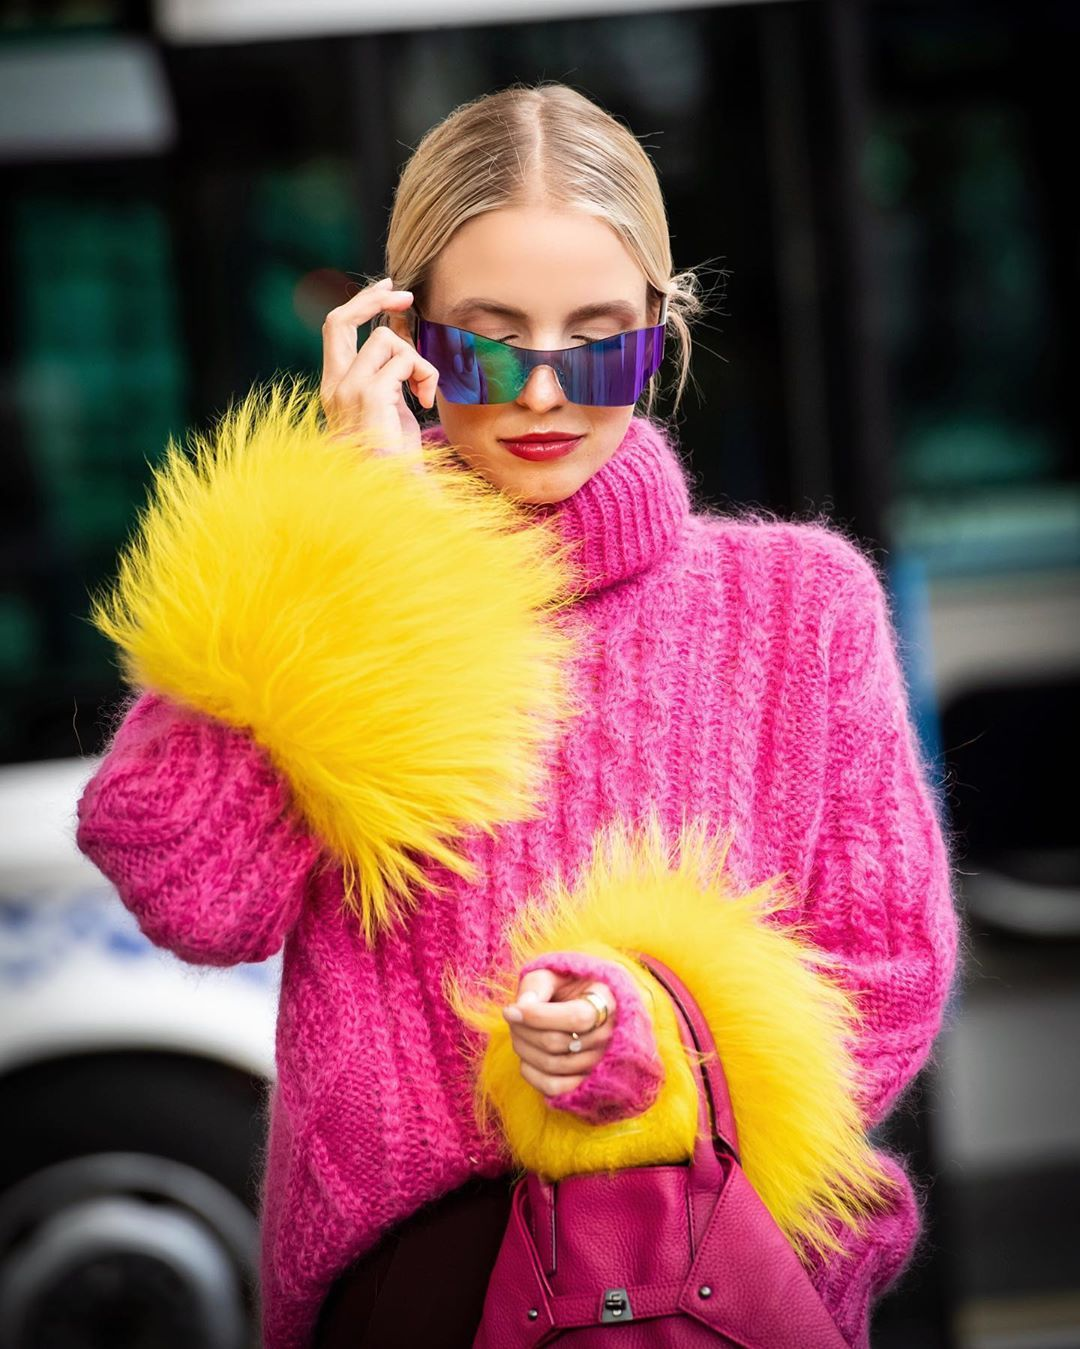 prada-yellow-shearling-trimmed-fuchsia-cable-knit-mohair-blend-sweater-leonie-hanne-instagram